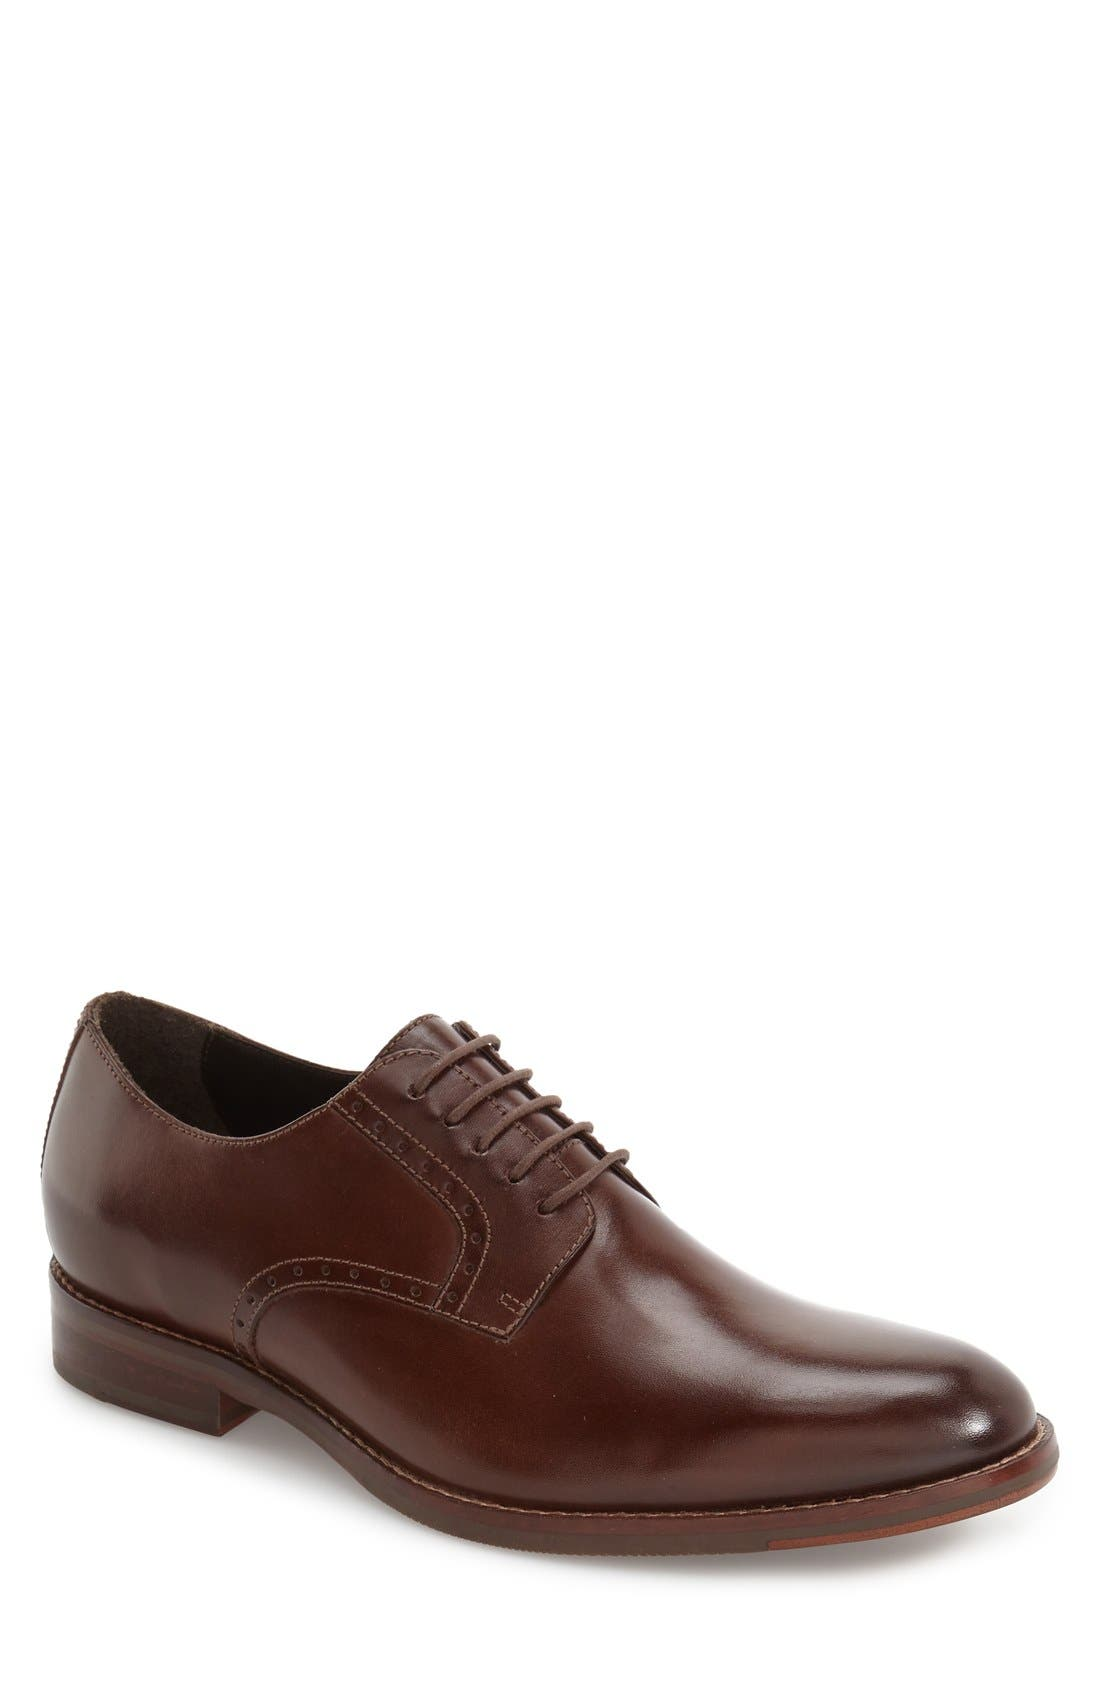 J&M 1850 'Meritt Plain Toe Derby